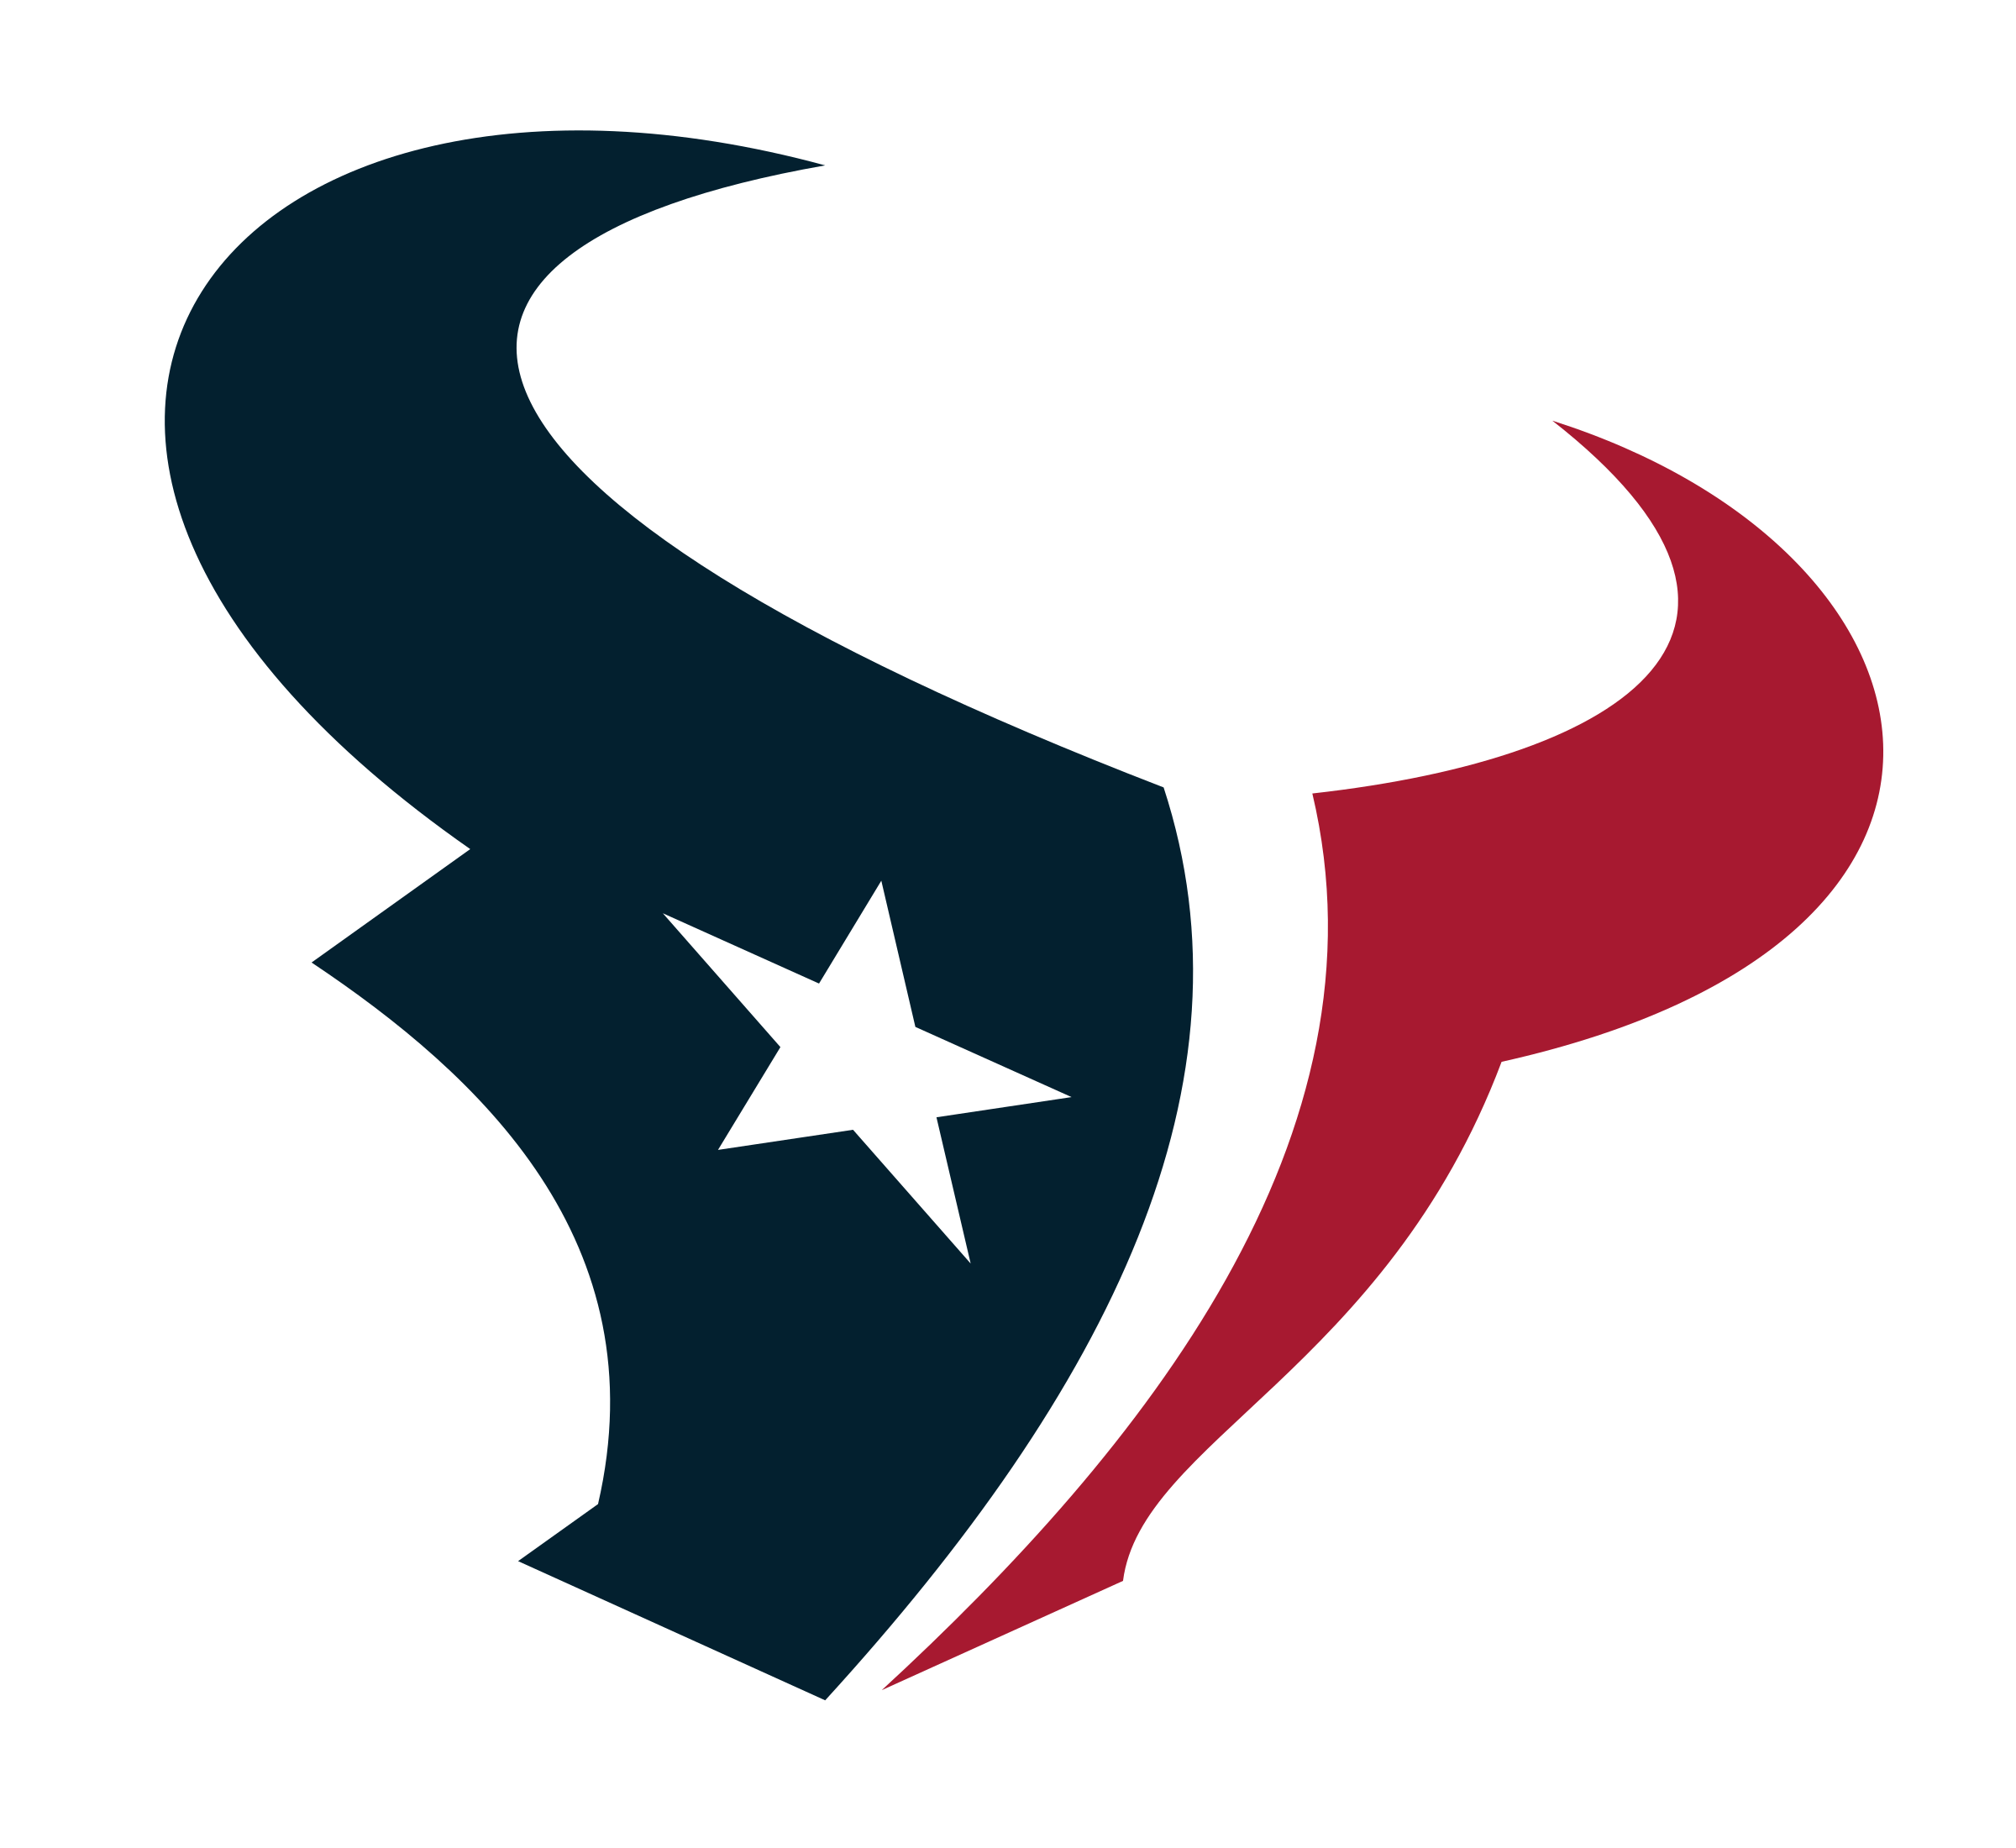 houston texans logo png transparent svg vector freebie supply rh freebiesupply com Mustang Cobra Logo Vector Spartan Logo Vector